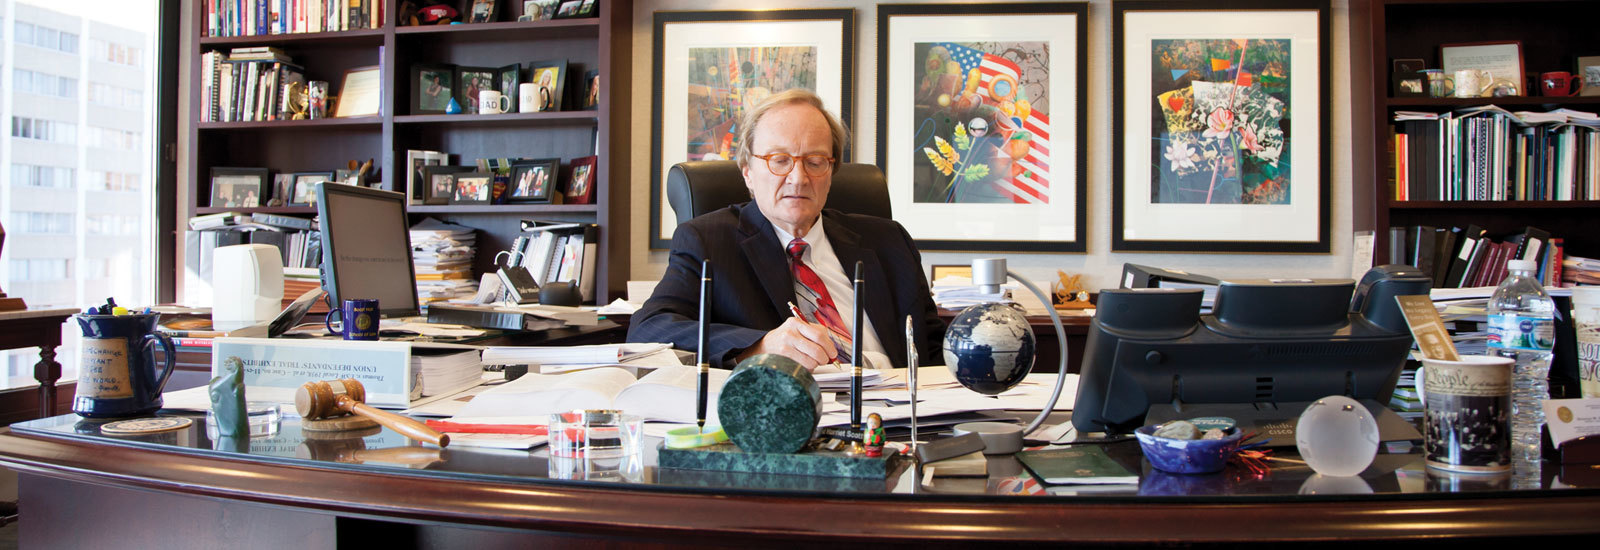 Frank works in his chambers, which are adorned with photographs, mementos, and awards from his 37-year legal career.